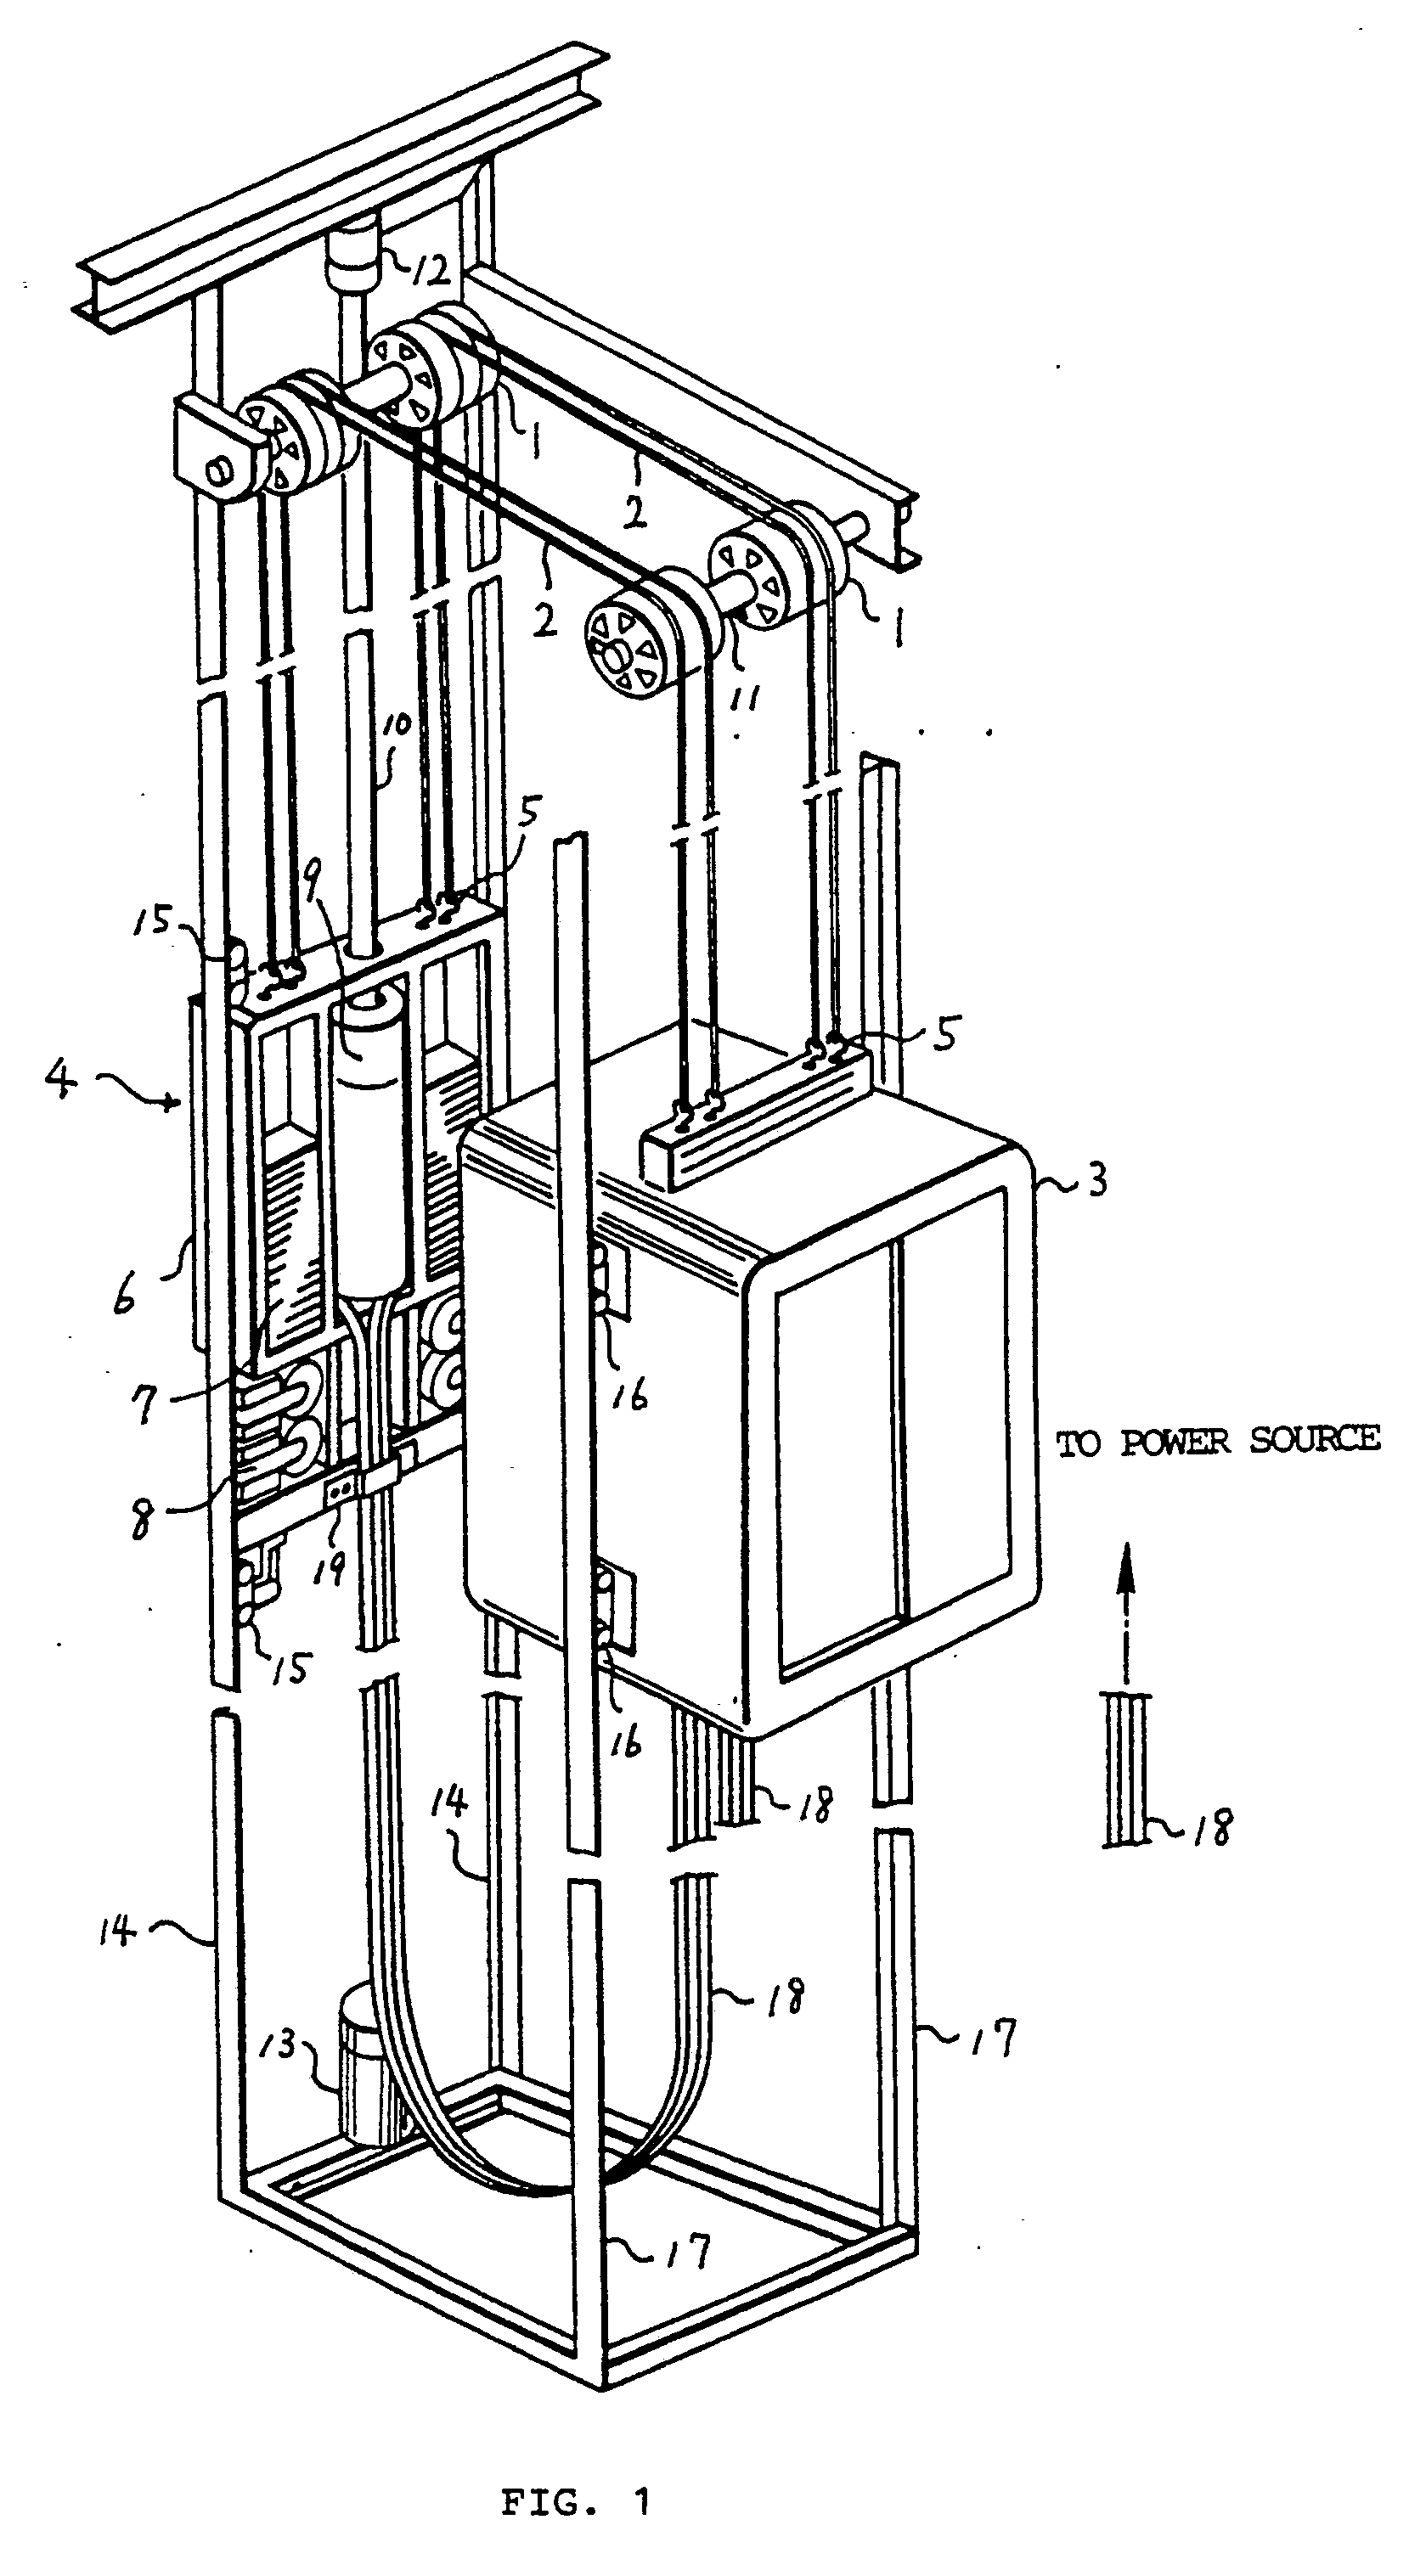 Underground Mining Techniques And Risks further Engine4 4 also Floor Jack Parts furthermore US7255202 moreover How To Select An Industrial Lift Table. on hydraulic schematic drawings